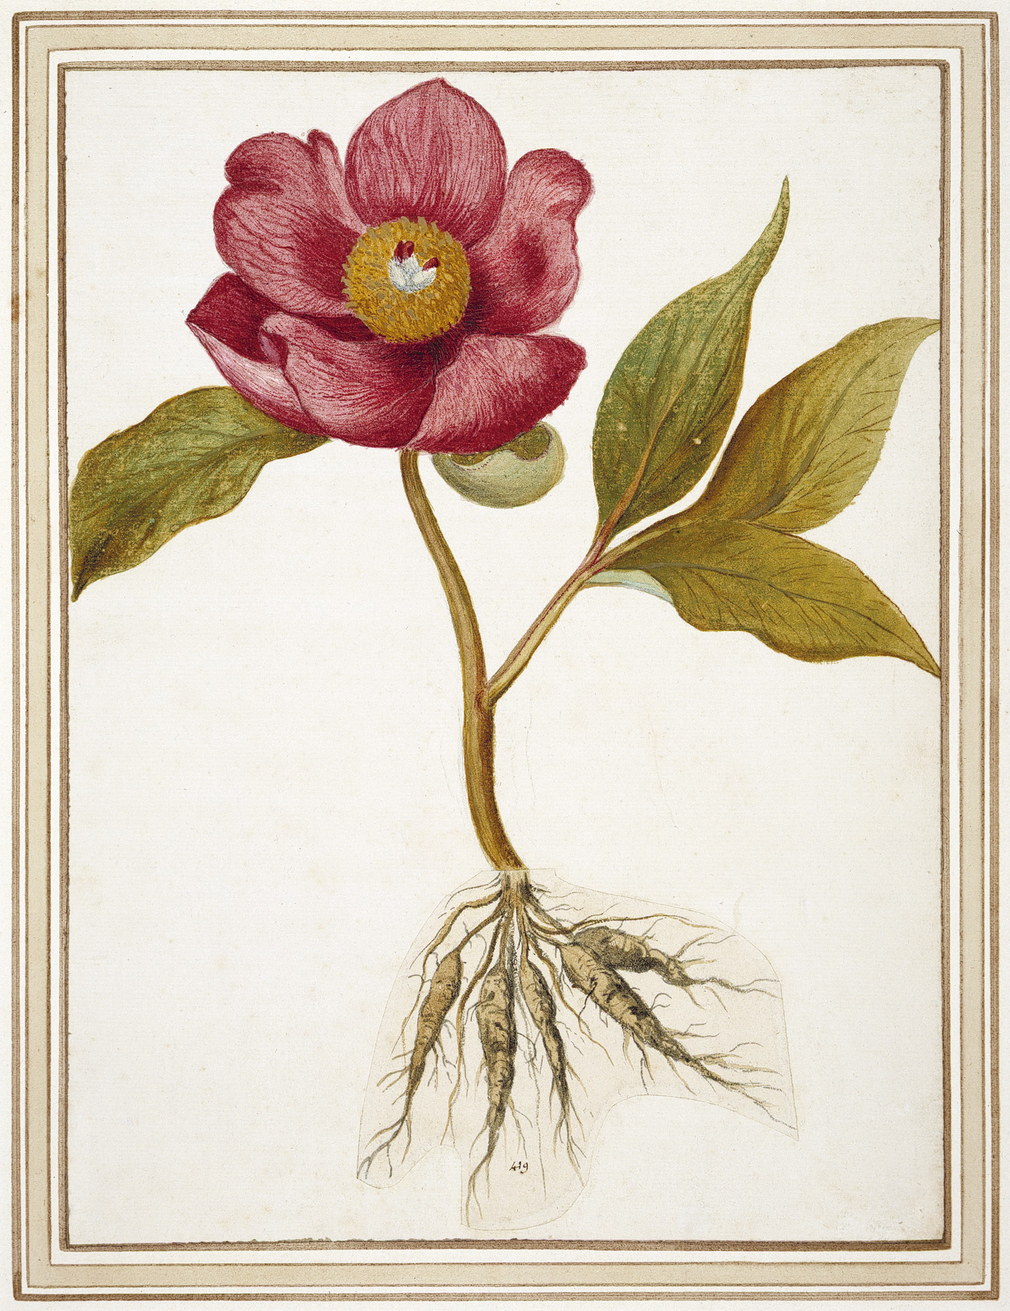 A watercolour of a Peony, from the family Ranunculaceae; mounted in a Cassiano mount type D. The drawing shows the roots and a single flower with large pink petals. The roots drawn on a separate sheet of paper cut out and stuck on.  This drawing is one